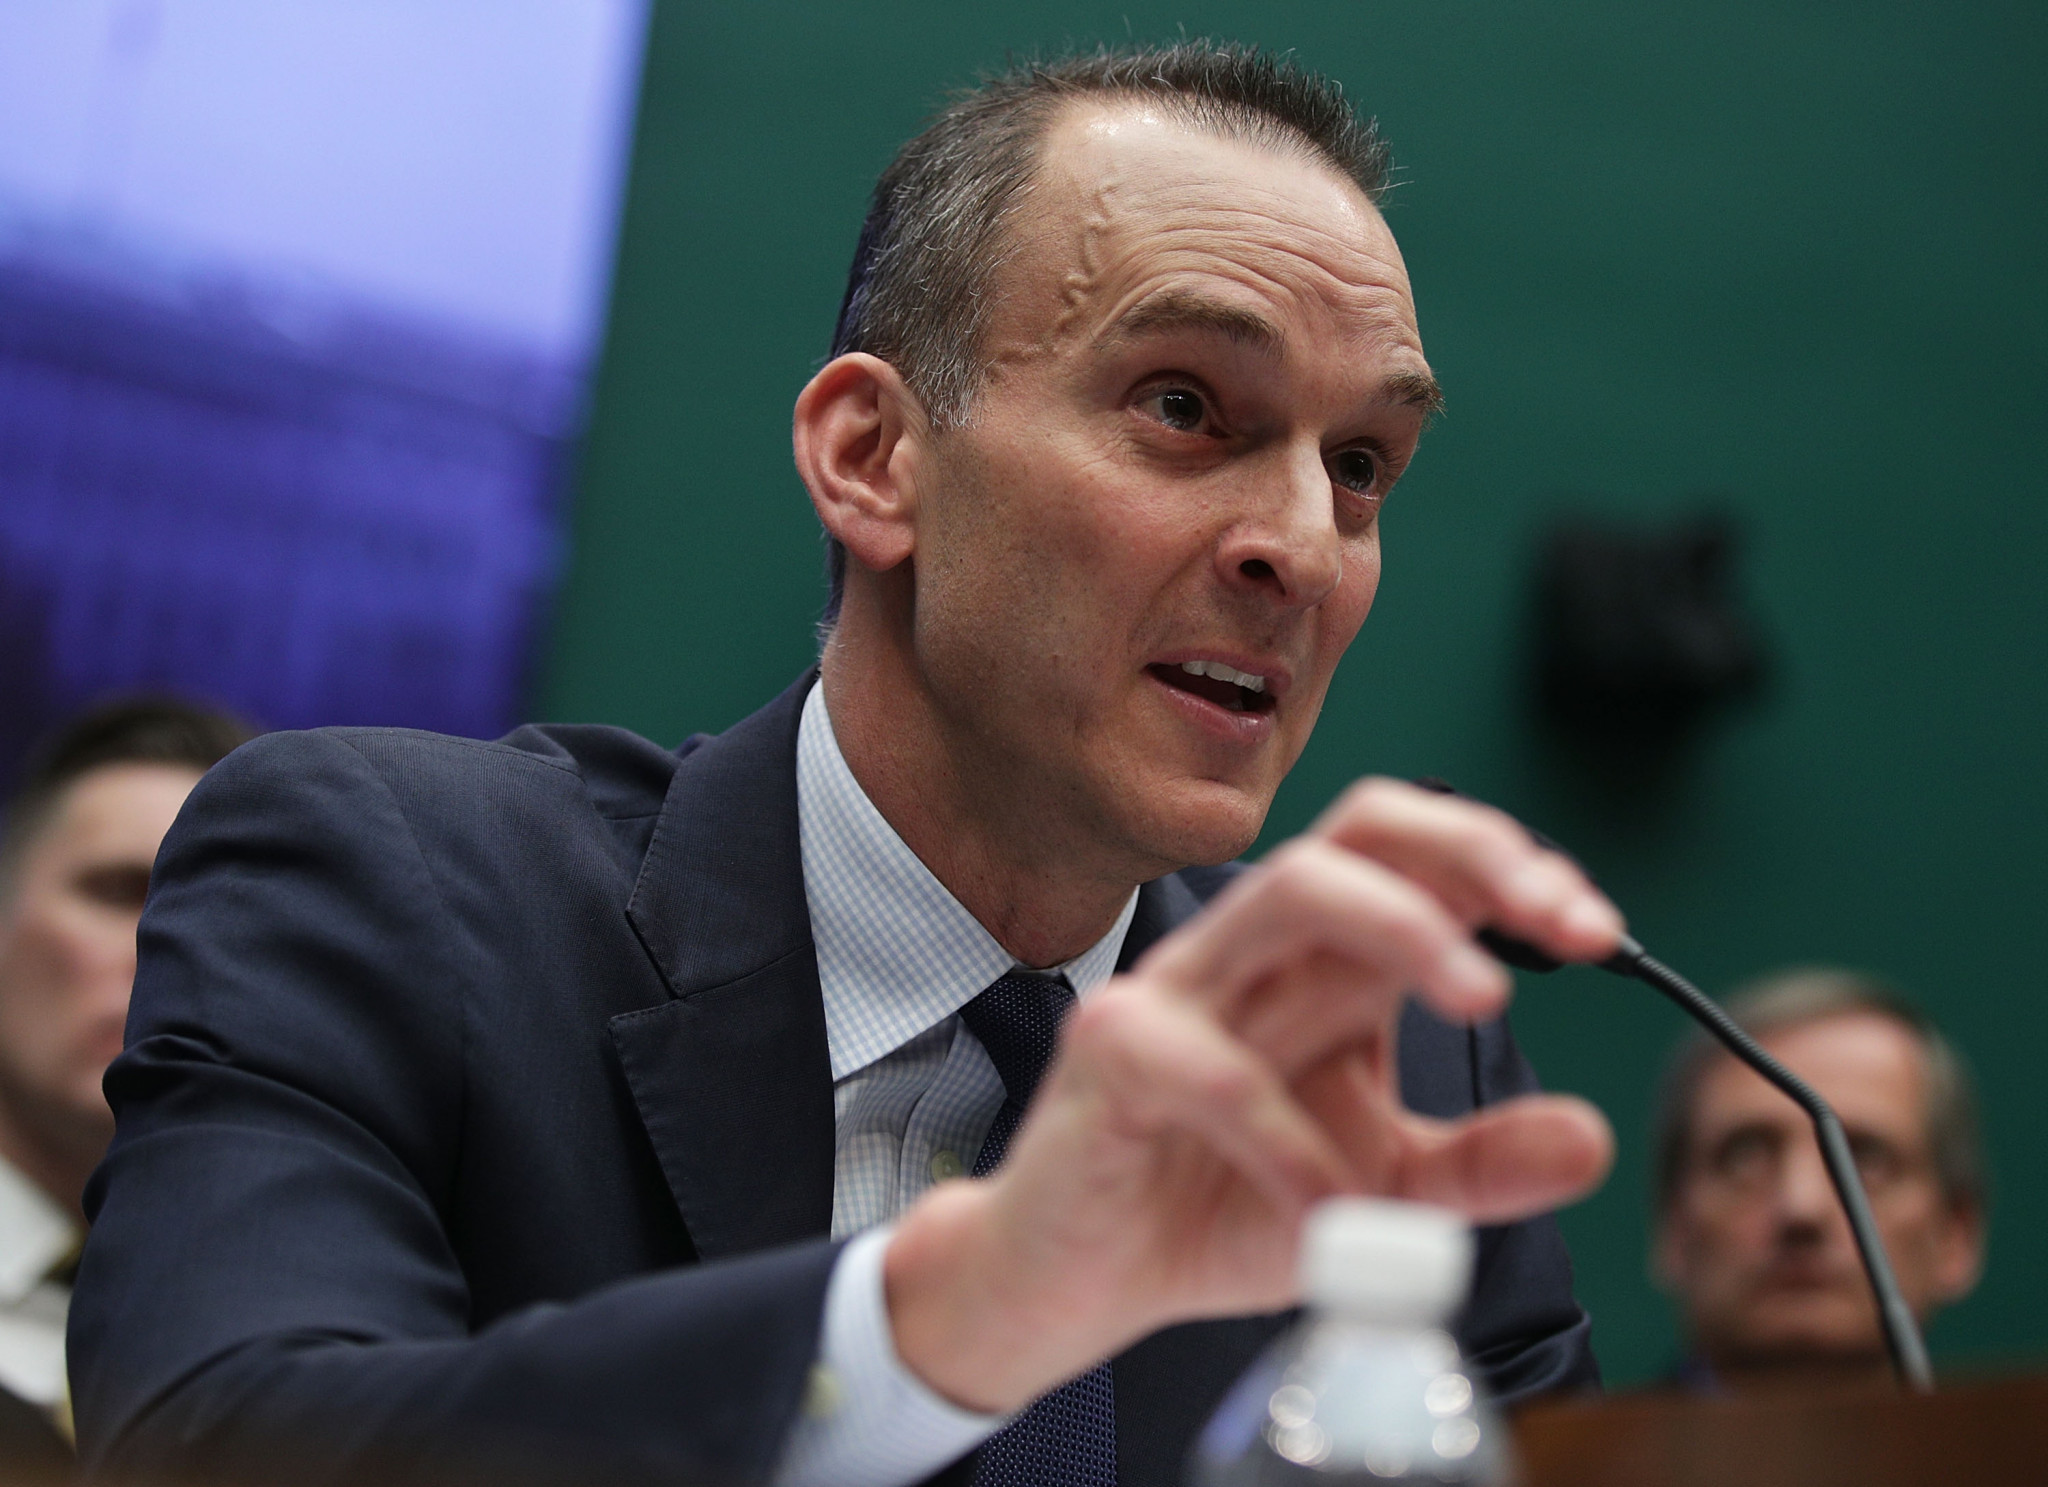 United States Anti-Doping chief executive Travis Tygart has been one of the leading critics of the way sport dealt with the Russian doping scandal and claims they were let off lightly ©Getty Images